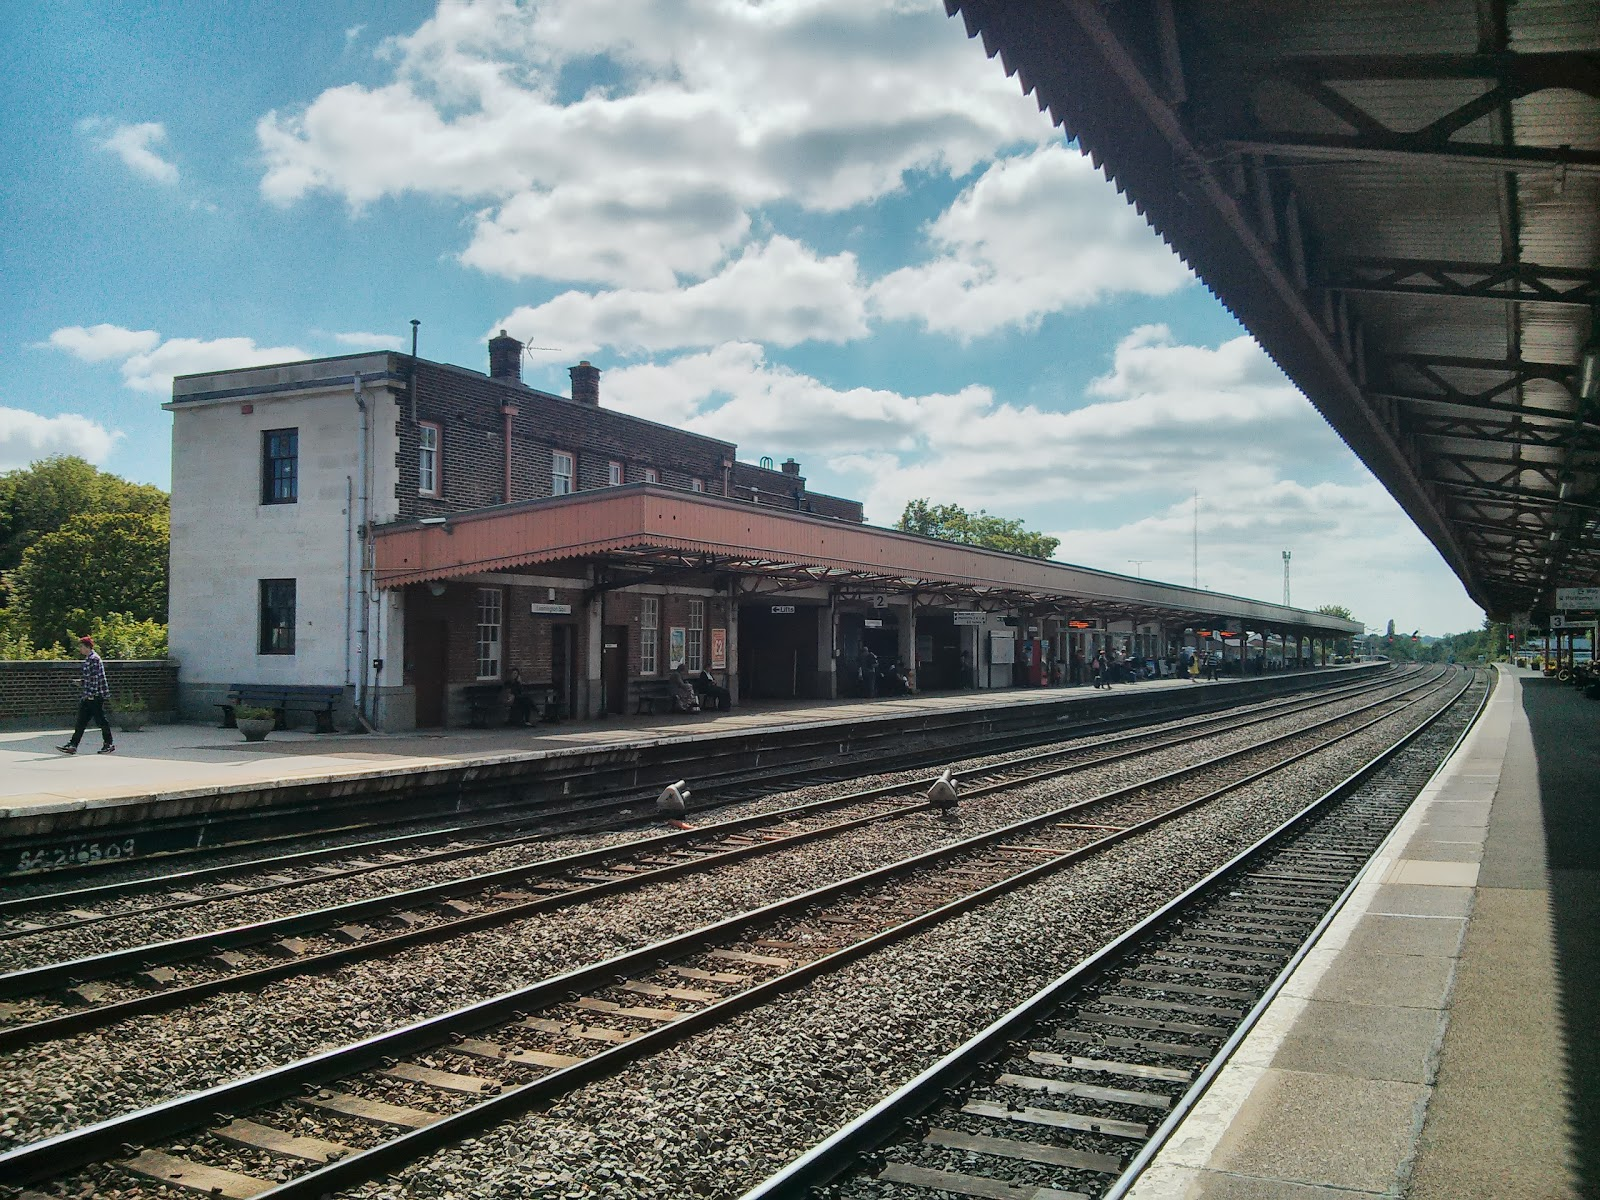 leamington_spa_station